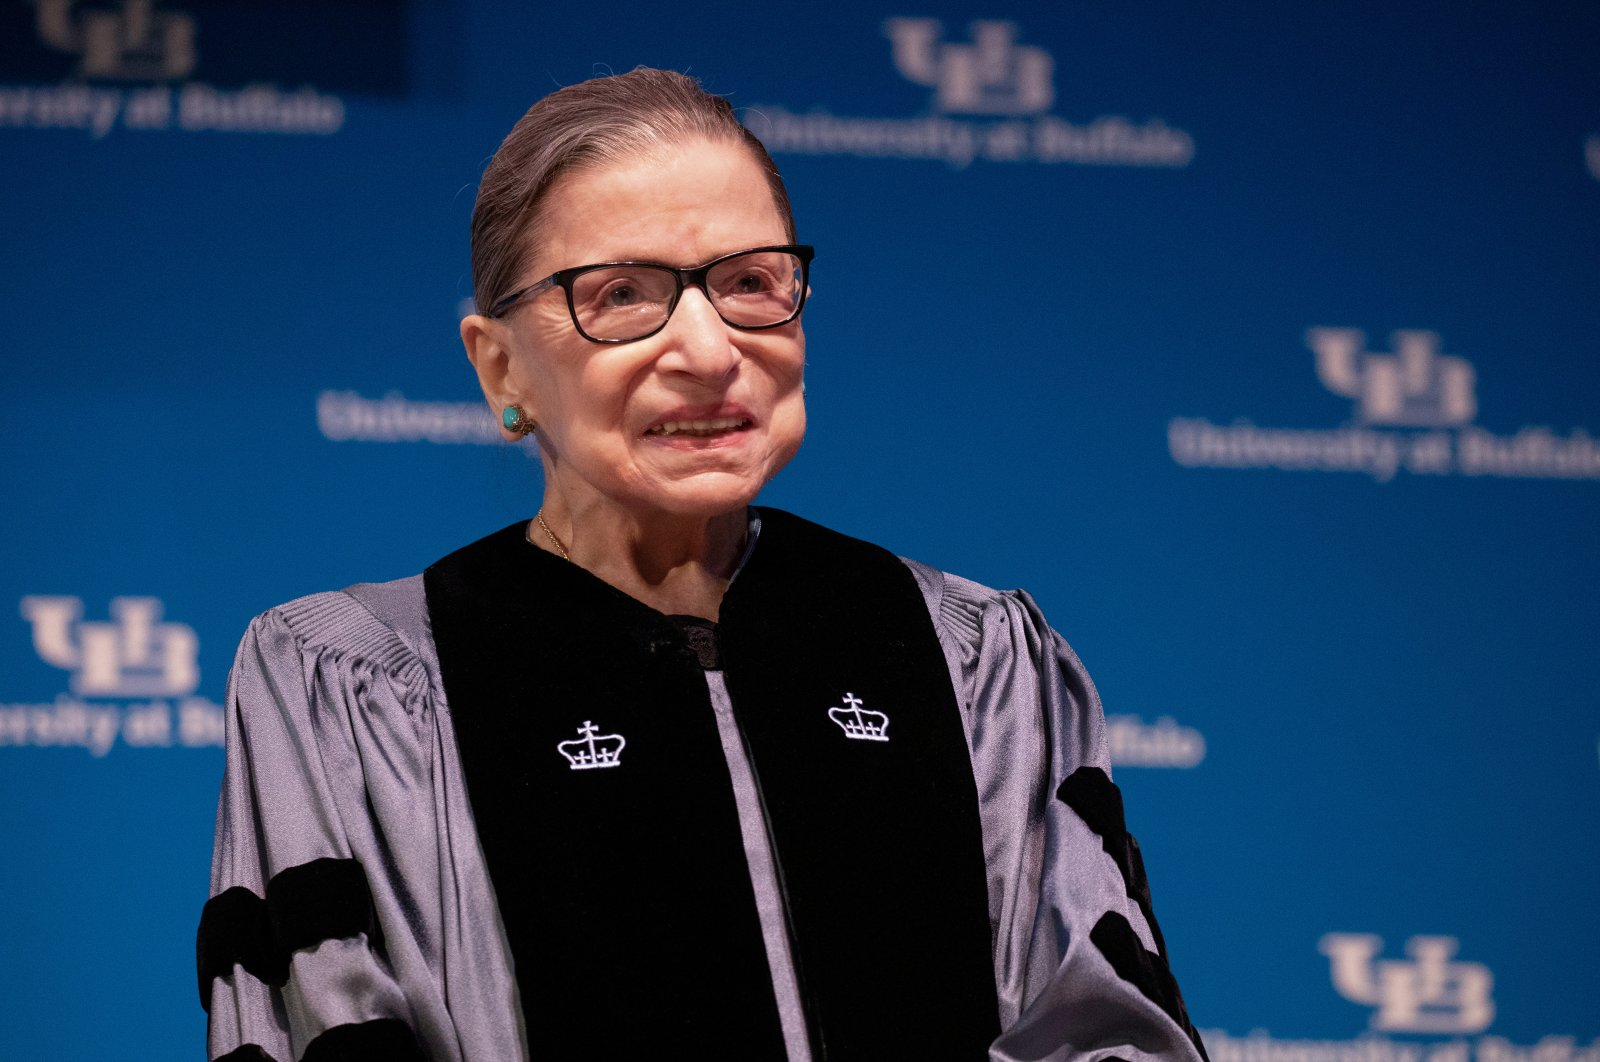 U.S. Supreme Court Justice Ruth Bader Ginsburg smiles during a reception where she was presented with an honorary doctoral degree at the University of Buffalo School of Law in Buffalo, New York, U.S., Aug. 26, 2019. (Reuters Photo)